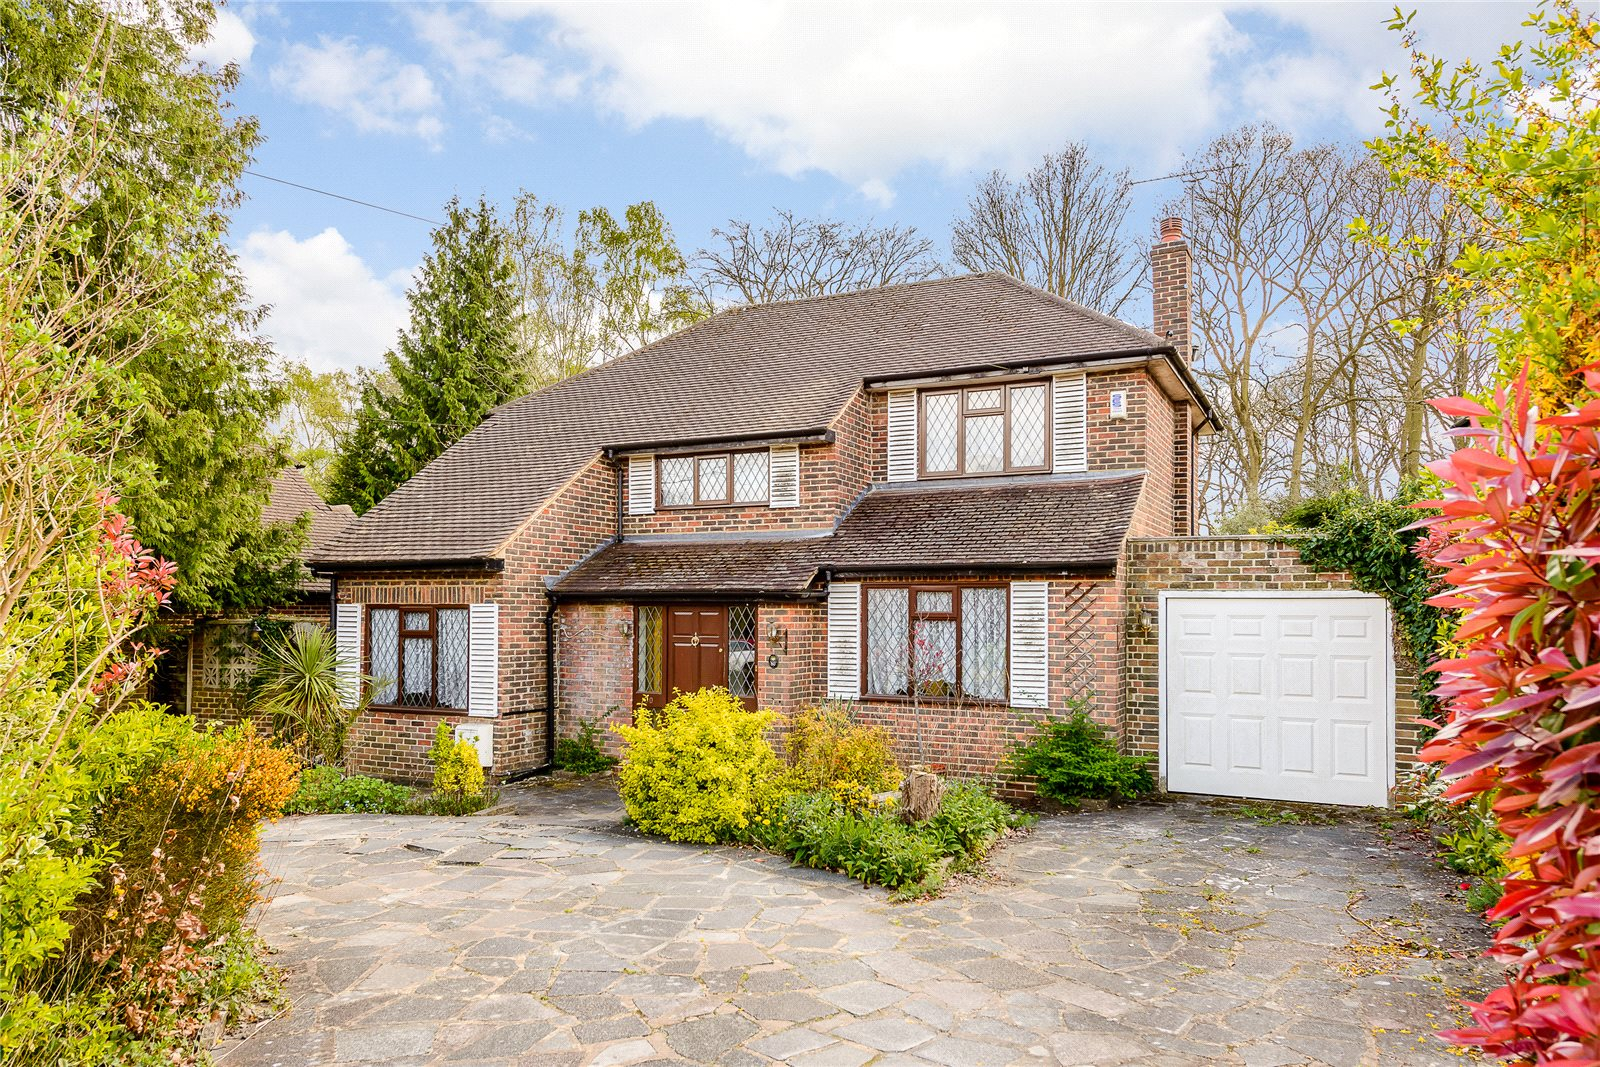 Casa Unifamiliar por un Venta en High Beeches, Gerrards Cross, Buckinghamshire, SL9 Gerrards Cross, Inglaterra